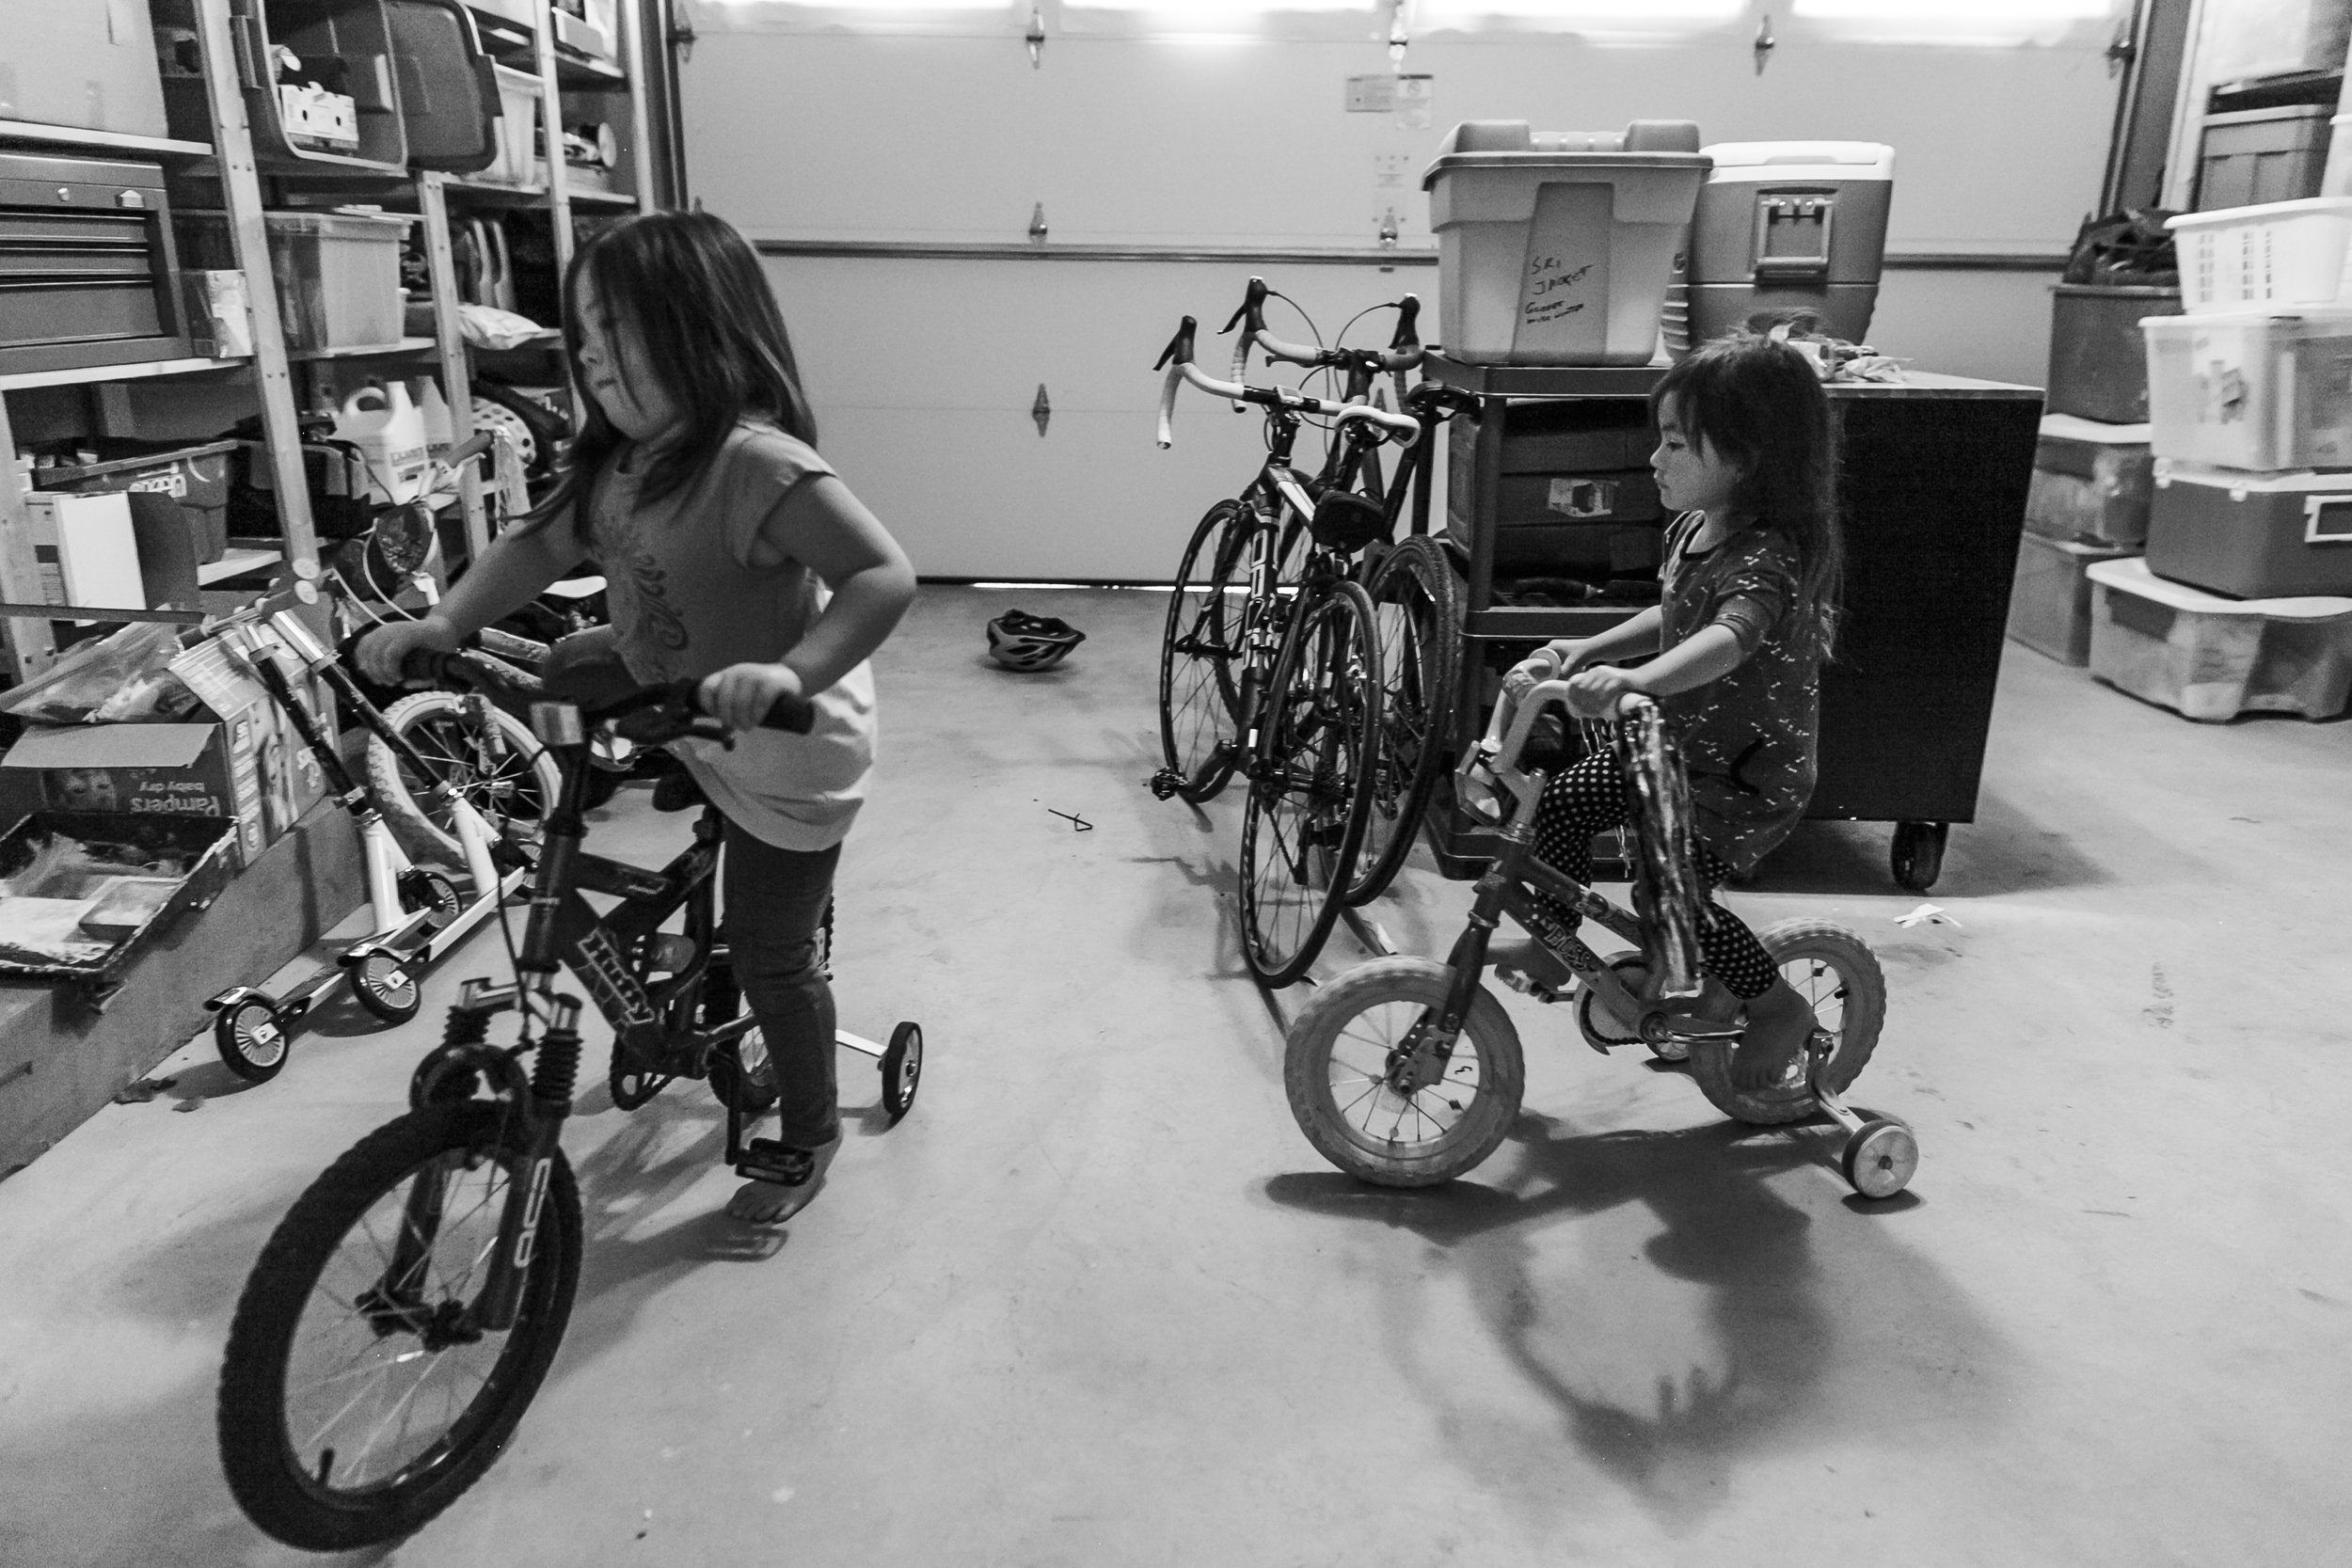 Surrey Family photographer. Vancouver family photographer, klutch Photography, documentary photography, candid photography, riding bikes in the garage